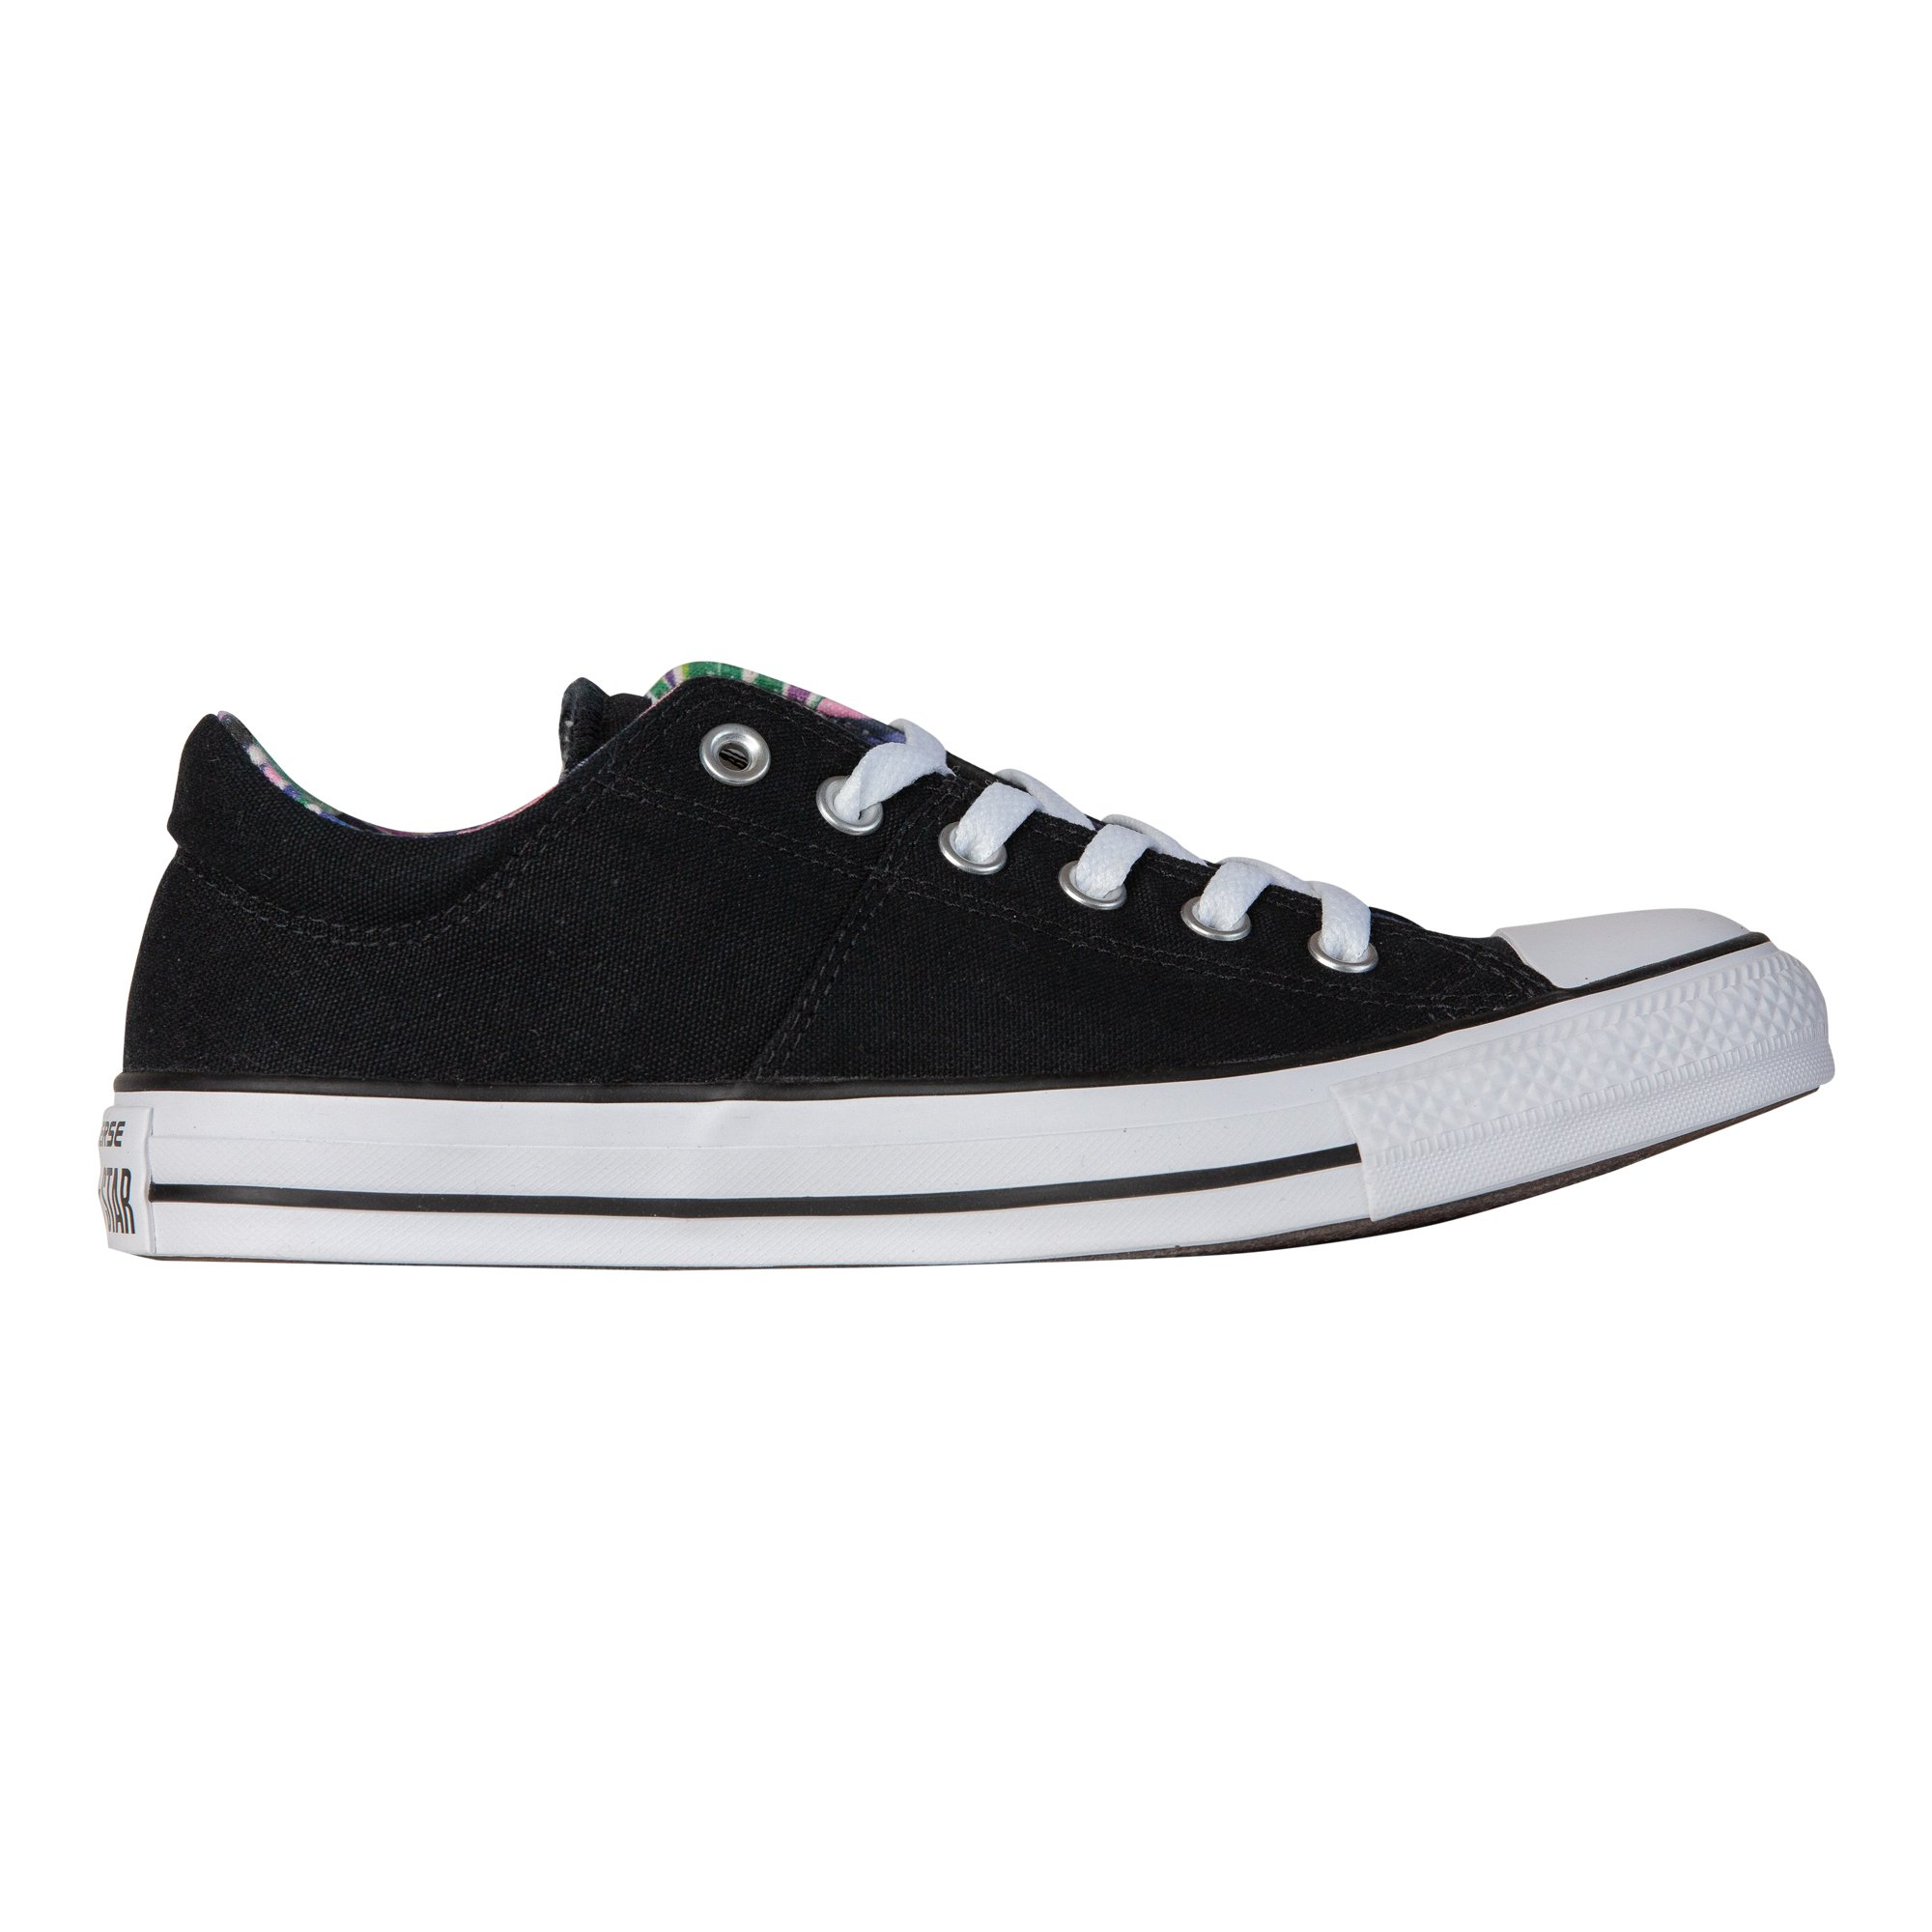 Converse Women's Chuck Taylor All Star Madison Sneakers, Black/White/White, 8 B(M) US by Converse (Image #4)